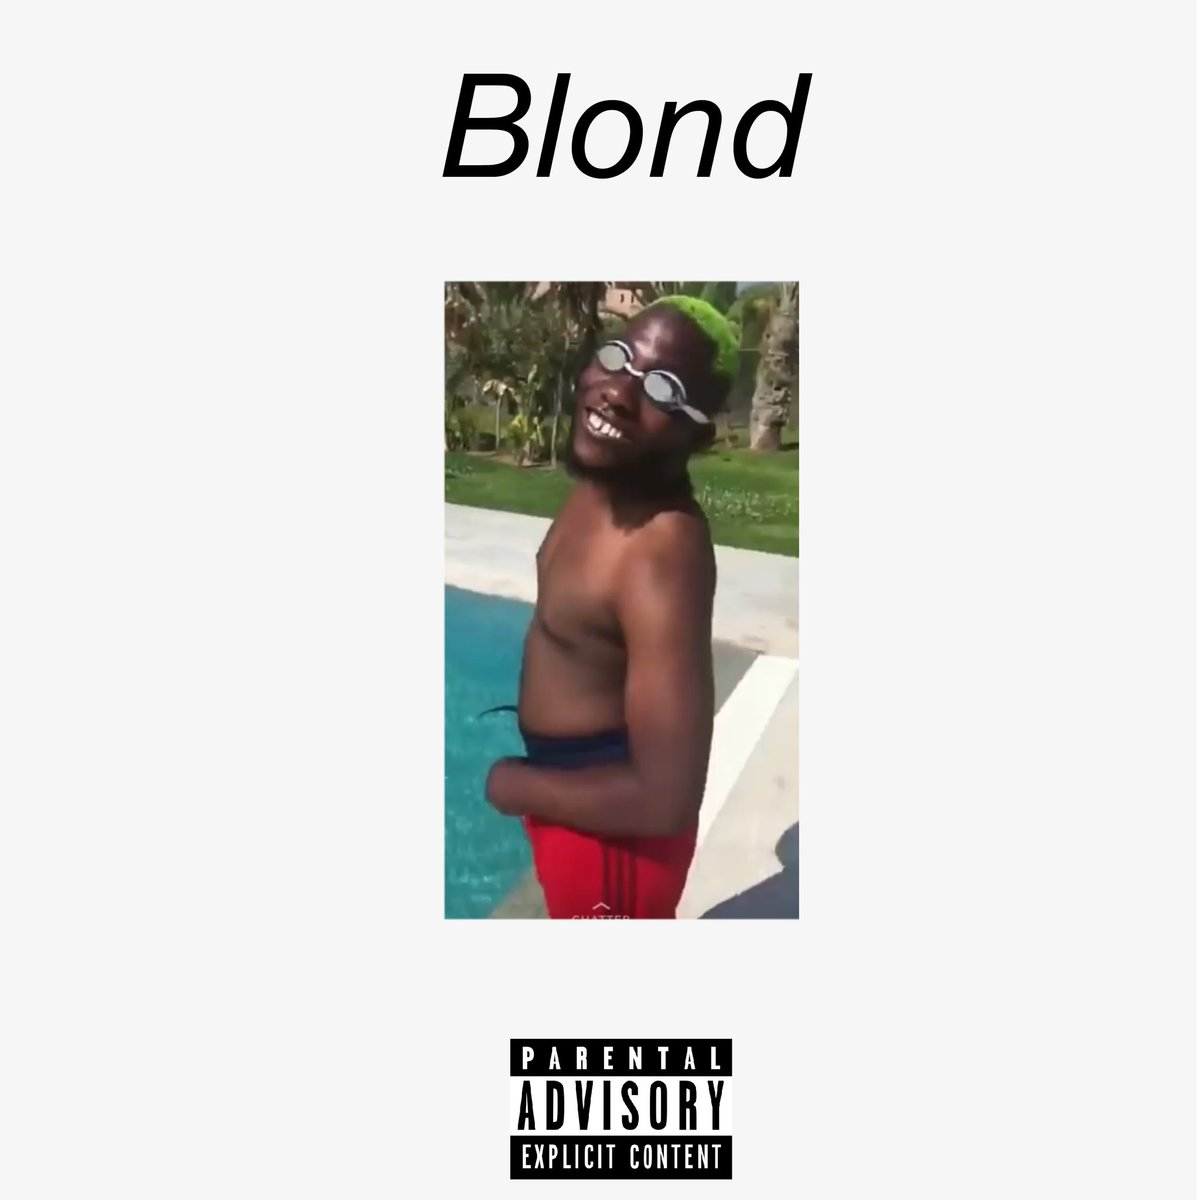 Blond by Frank Ocean designed by Virgil Abloh pic.twitter.com/i7fncMcTVG  by Alwin 🖖🏽